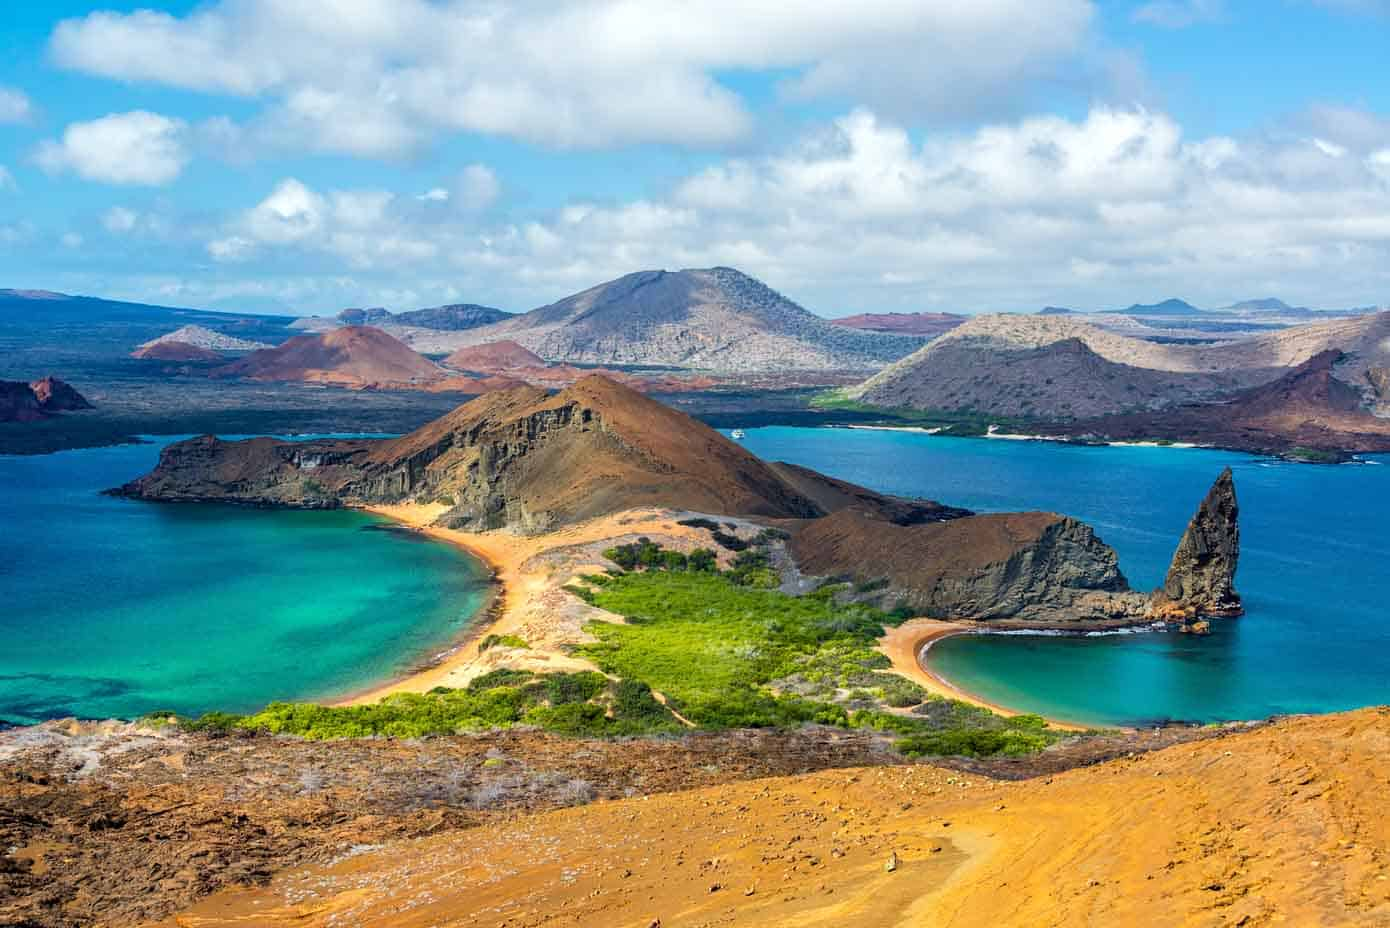 Beaches and elaborate raised geography in the Galapagos Islands.